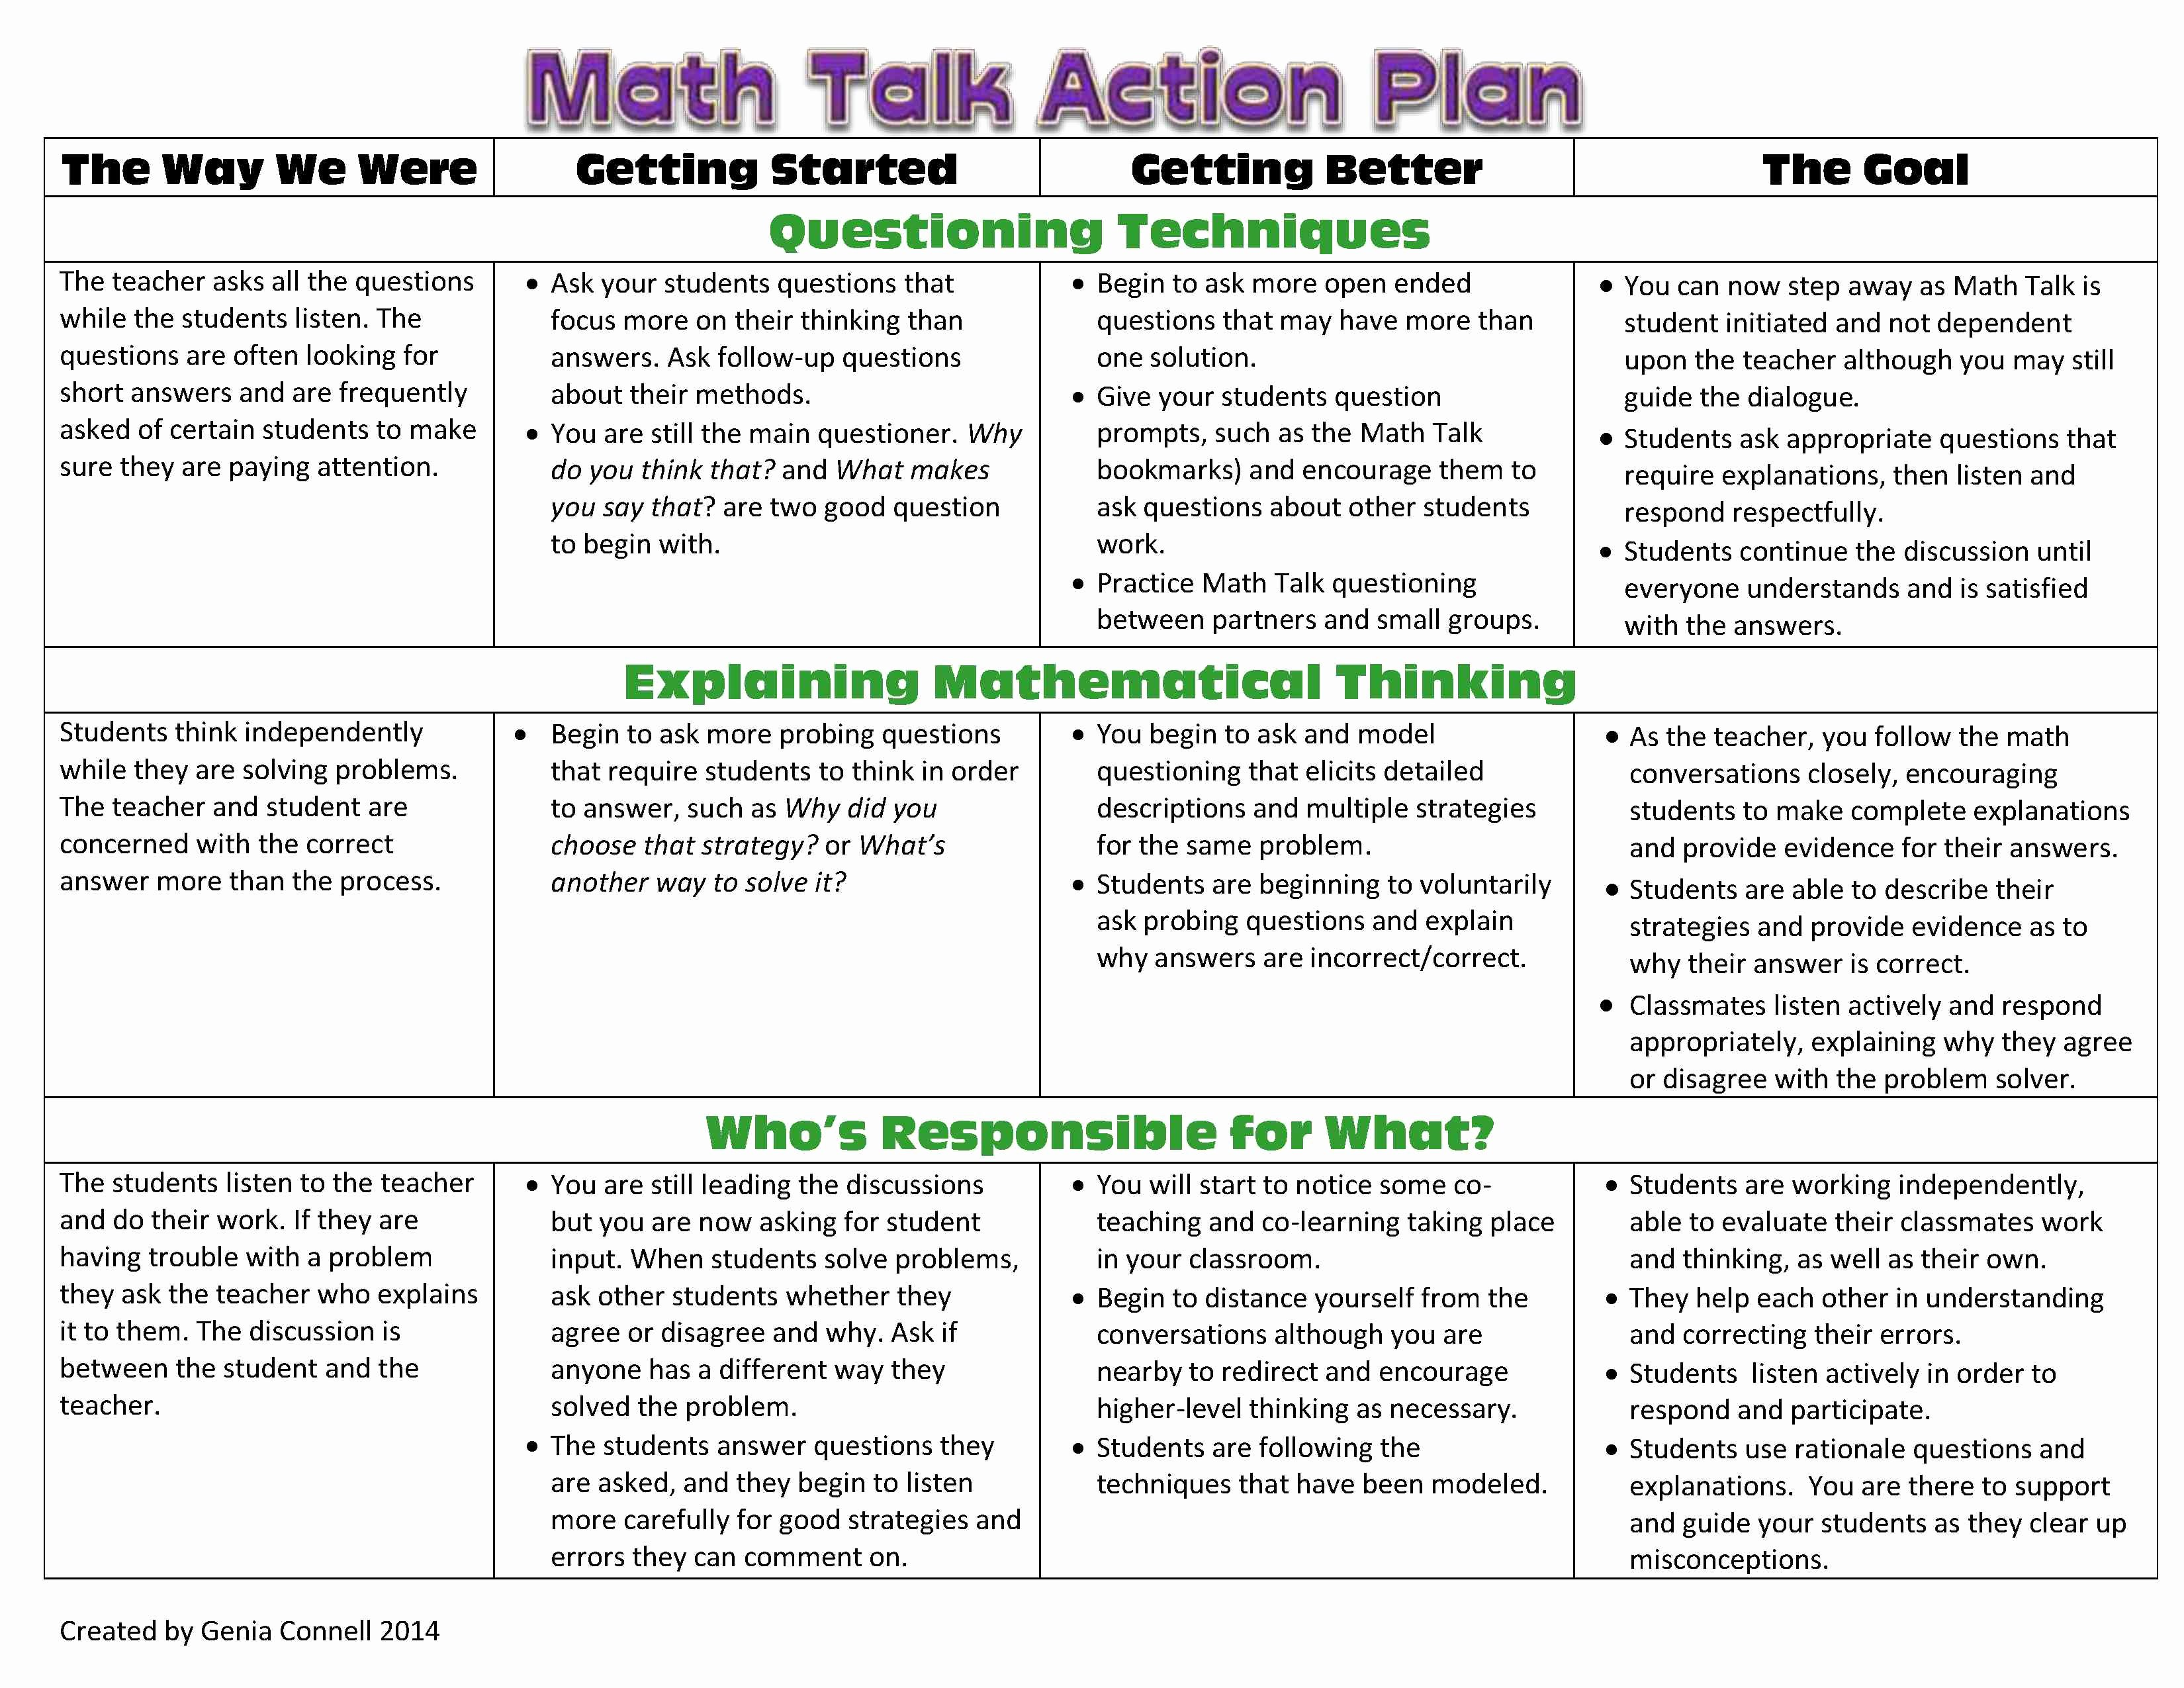 Action Plan Example for Students New Math Talk 101